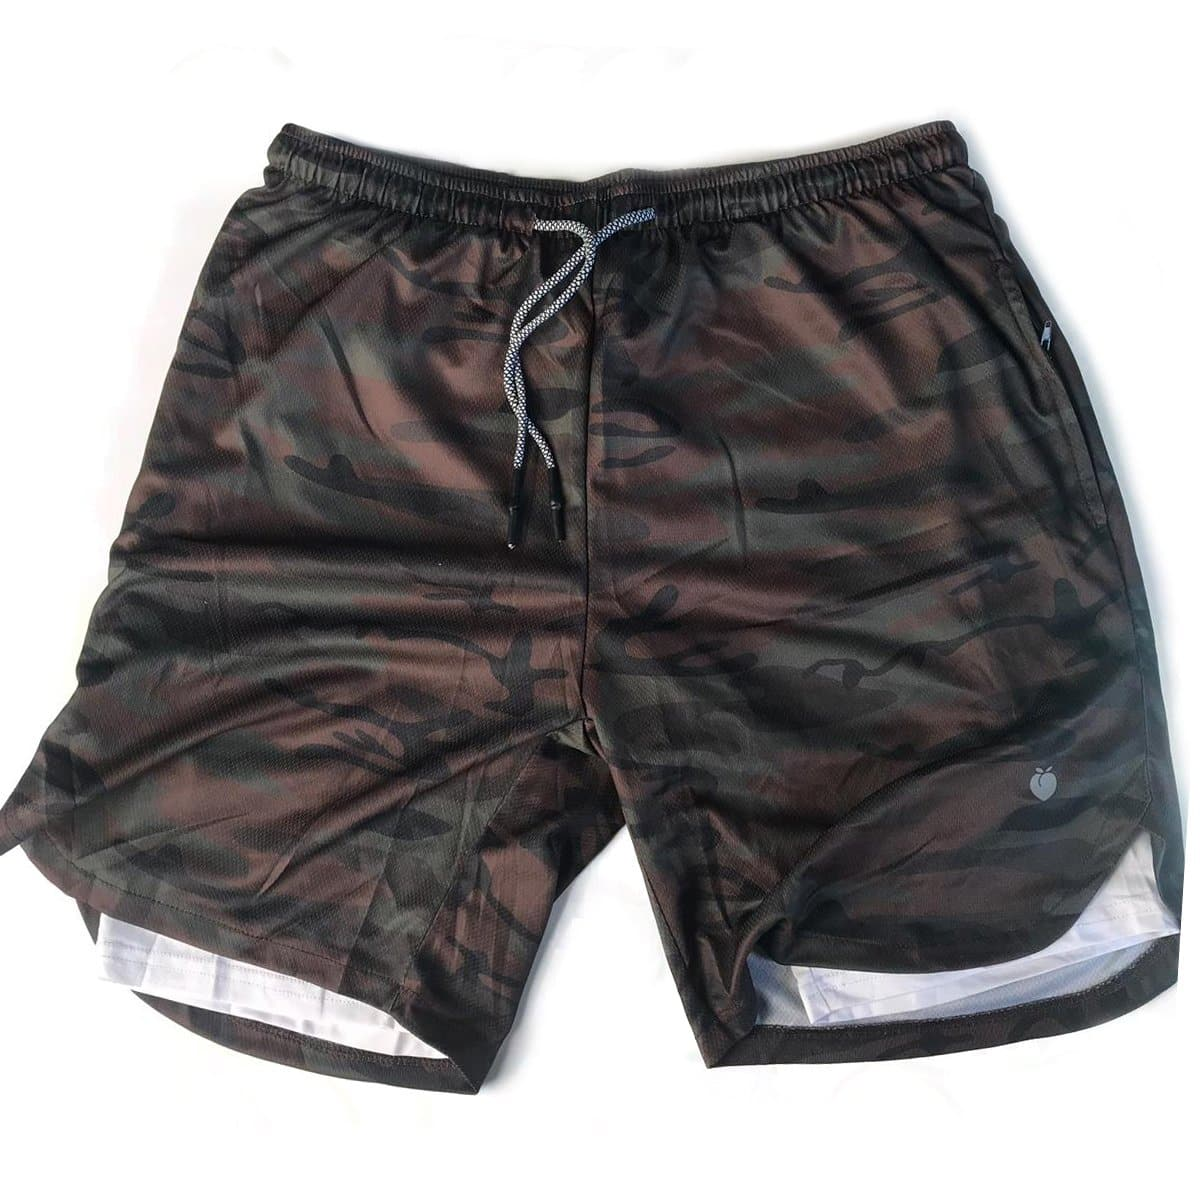 Men's Active Shorts 2.0 (Compression Lined W/ Pocket) - BlackCamo/White